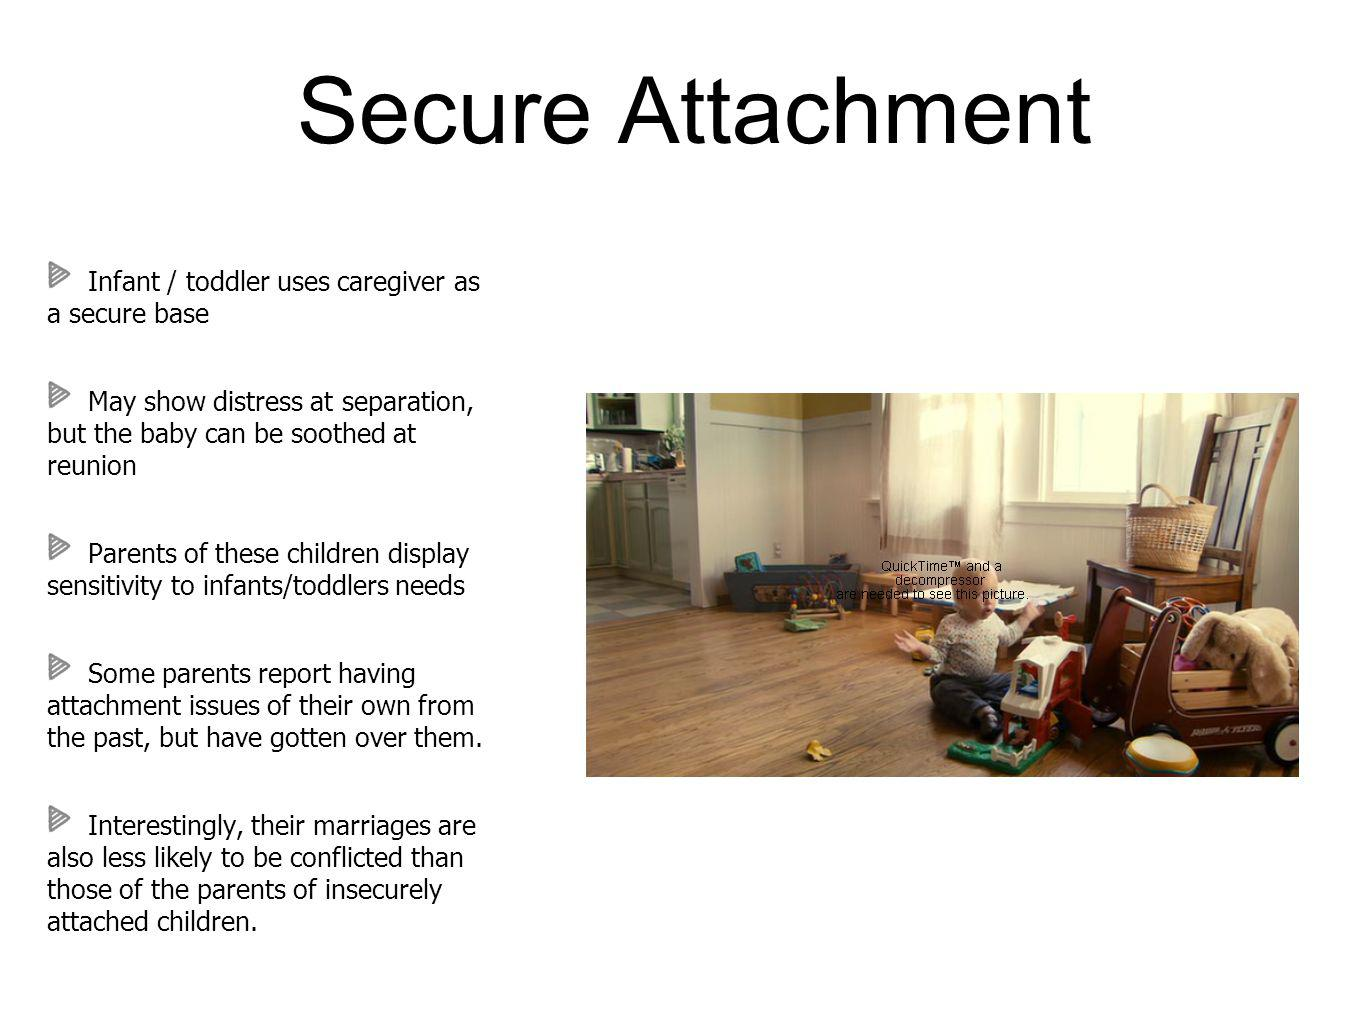 Secure Attachment Infant / toddler uses caregiver as a secure base May show distress at separation, but the baby can be soothed at reunion Parents of these children display sensitivity to infants/toddlers needs Some parents report having attachment issues of their own from the past, but have gotten over them.